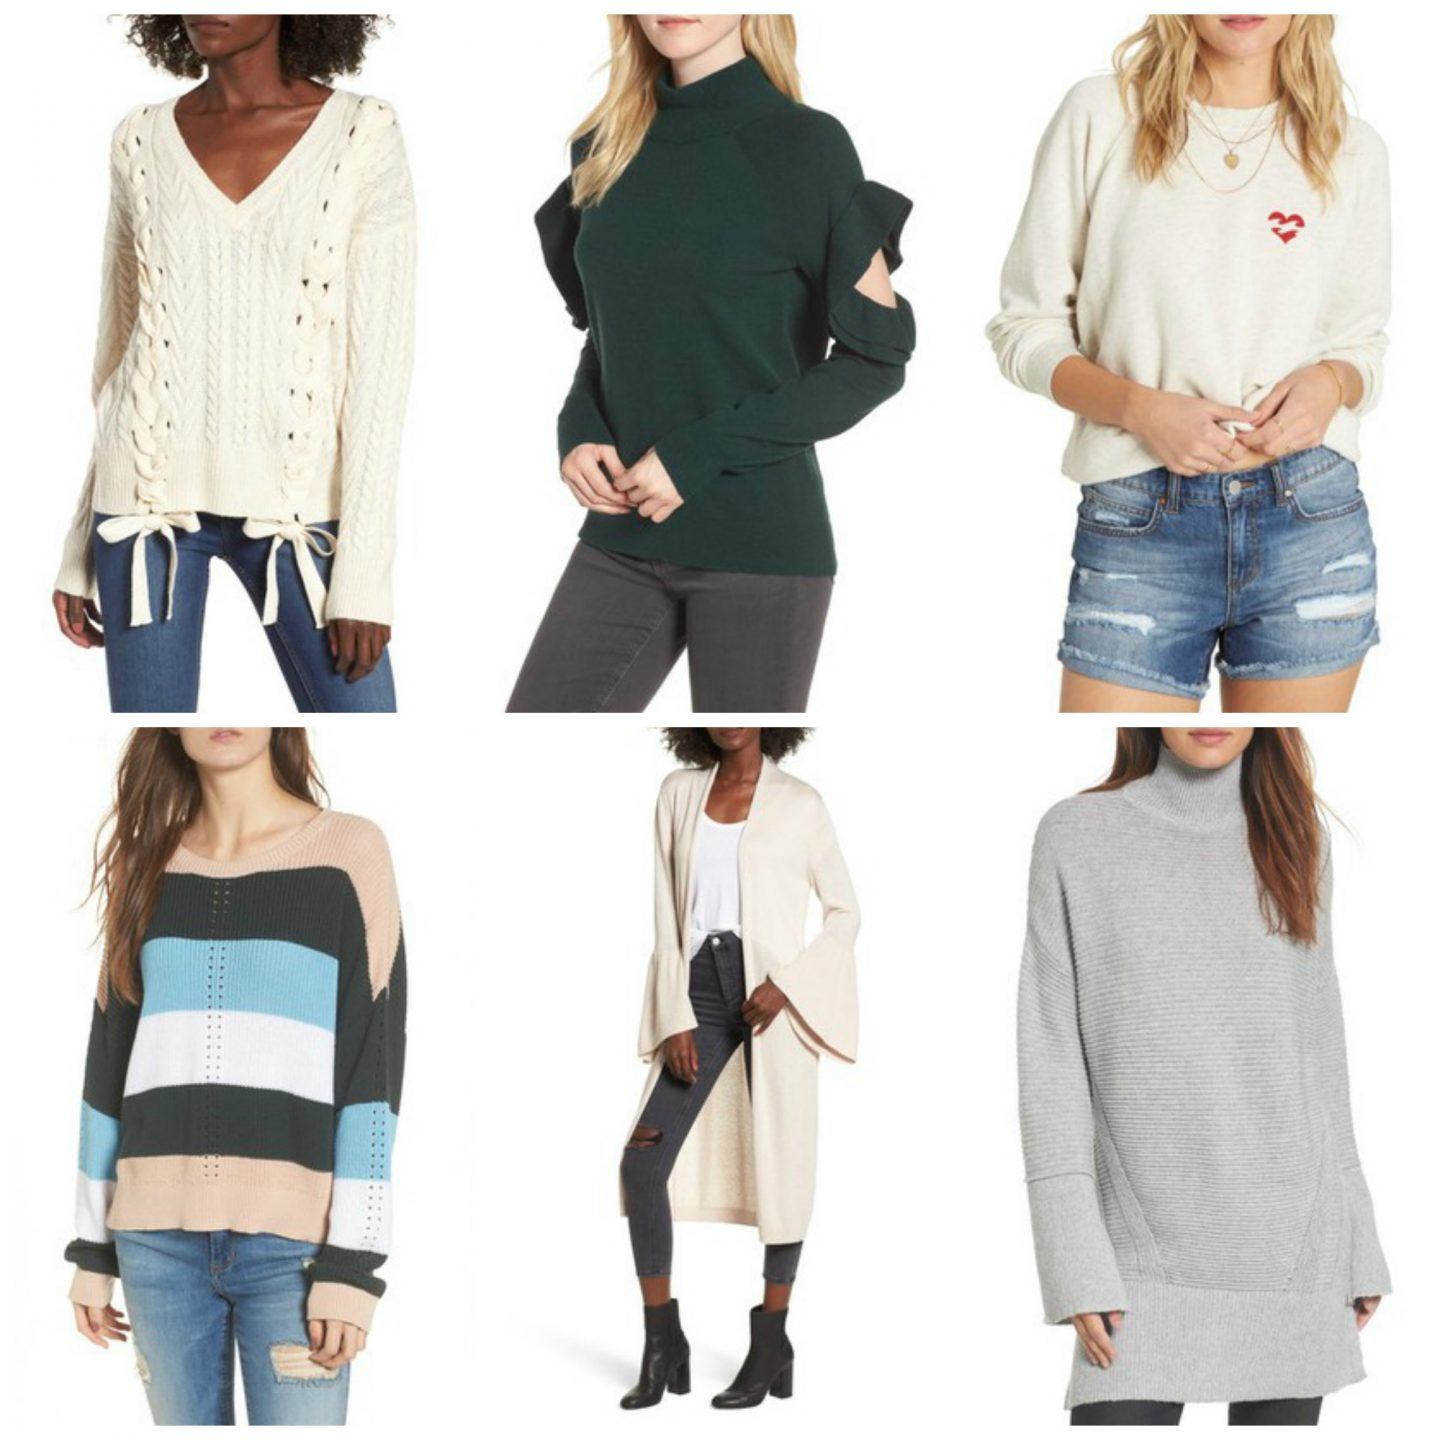 Tuesday's Cravings: Cozy Sweaters